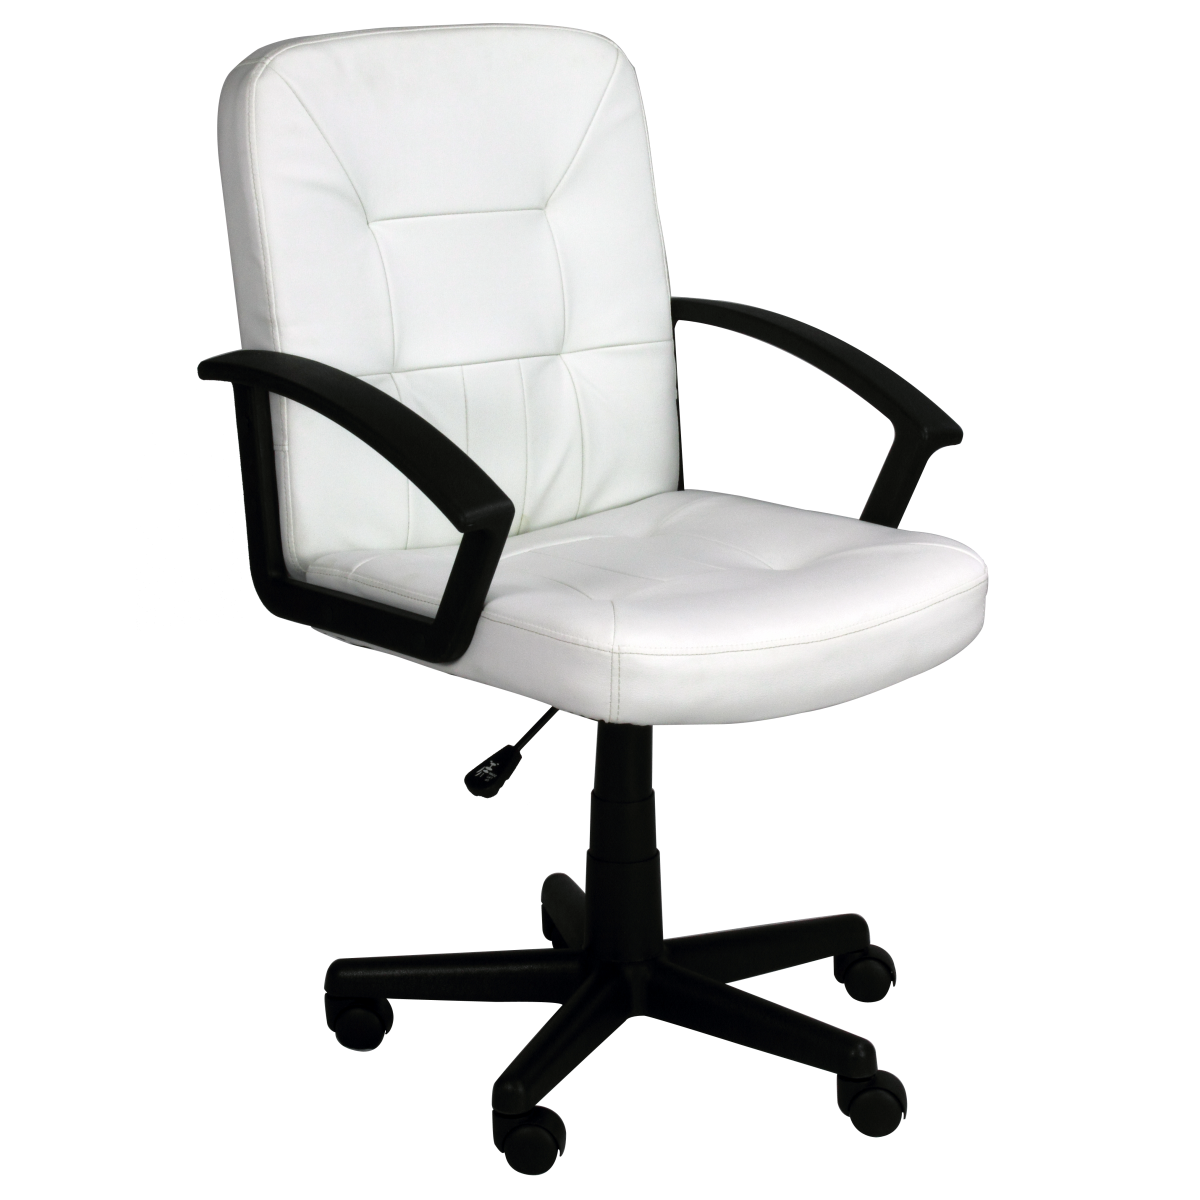 Chair Png Image Office Chair Chair Affordable Office Chairs